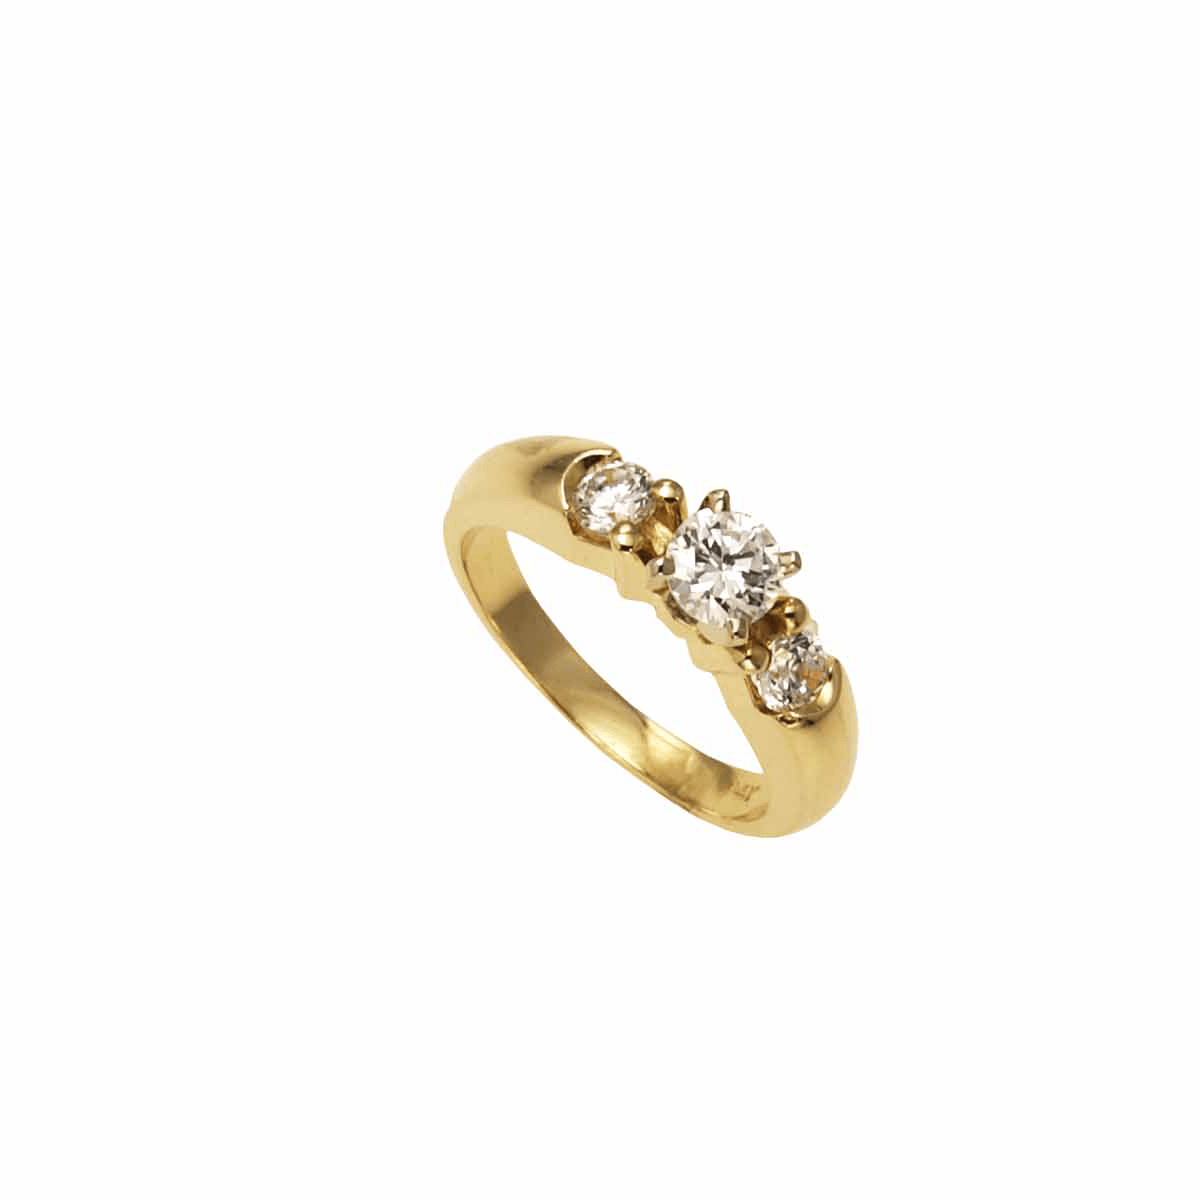 CHRIS AIRE ENGAGEMENT RING - Chris Aire Fine Jewelry & Timepieces